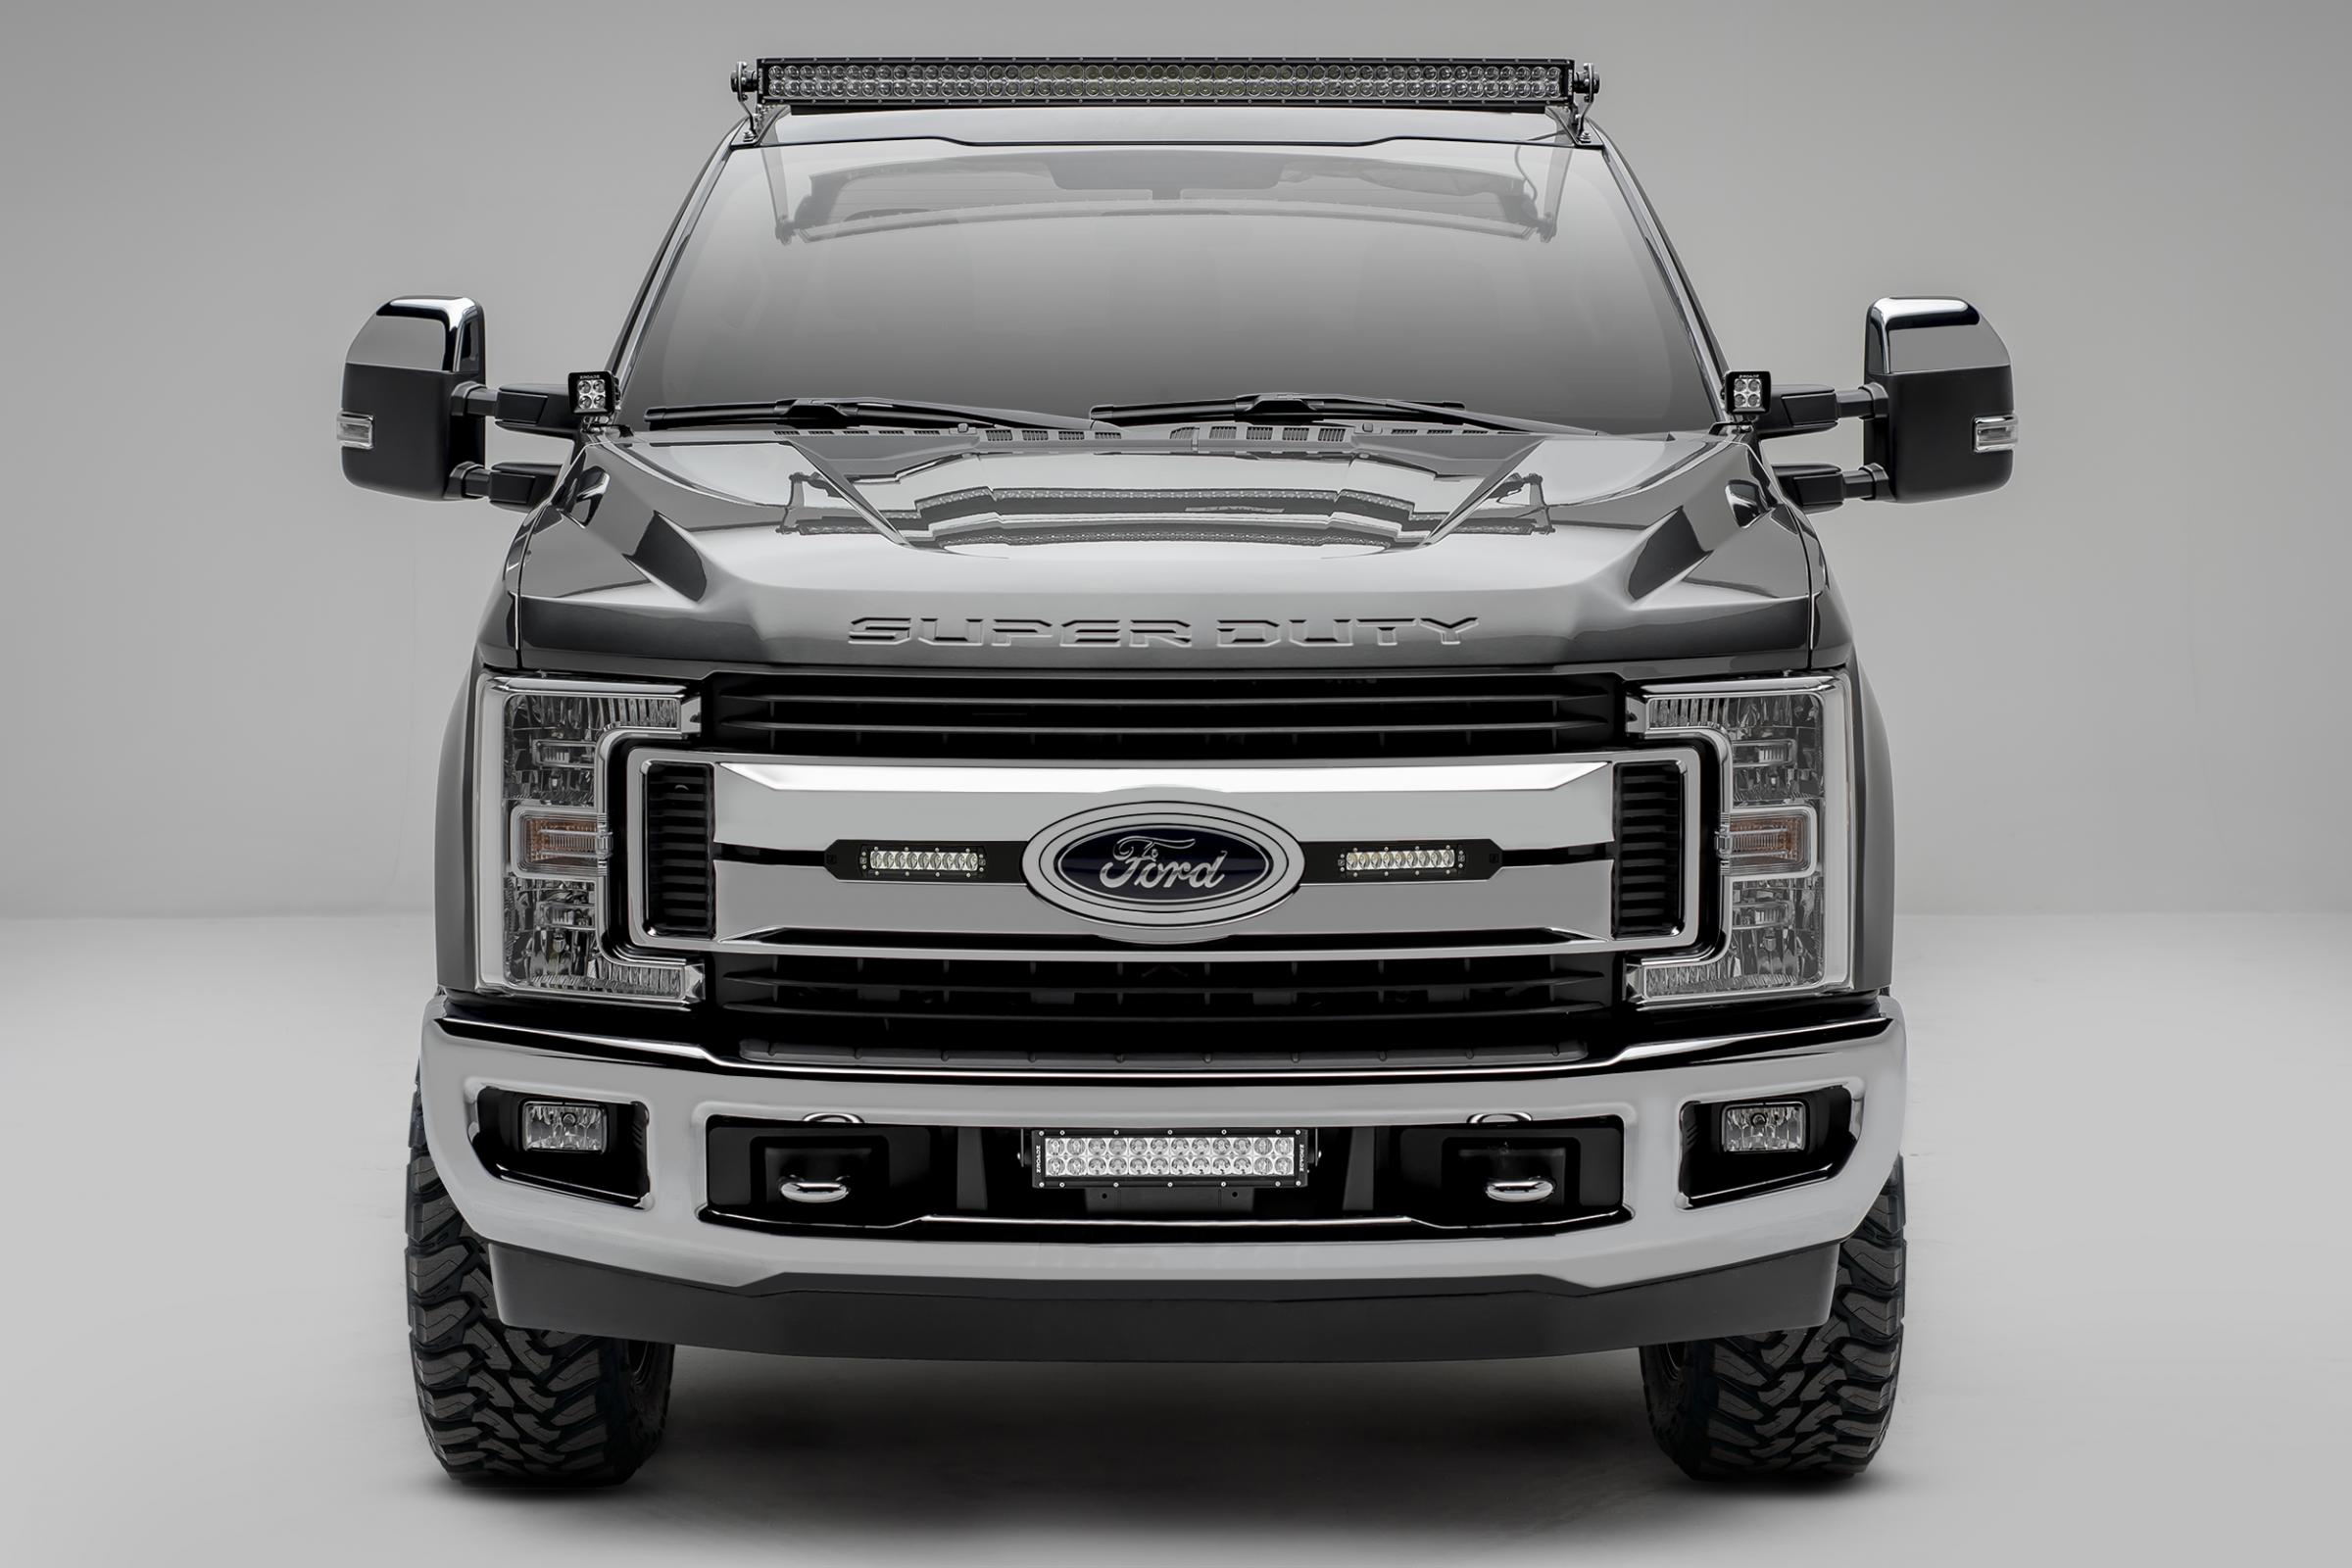 Oem grille led light bar mounts black 2017 ford f 250350 includes oem grille led light bar mounts black 2017 ford f 250350 includes two mozeypictures Choice Image